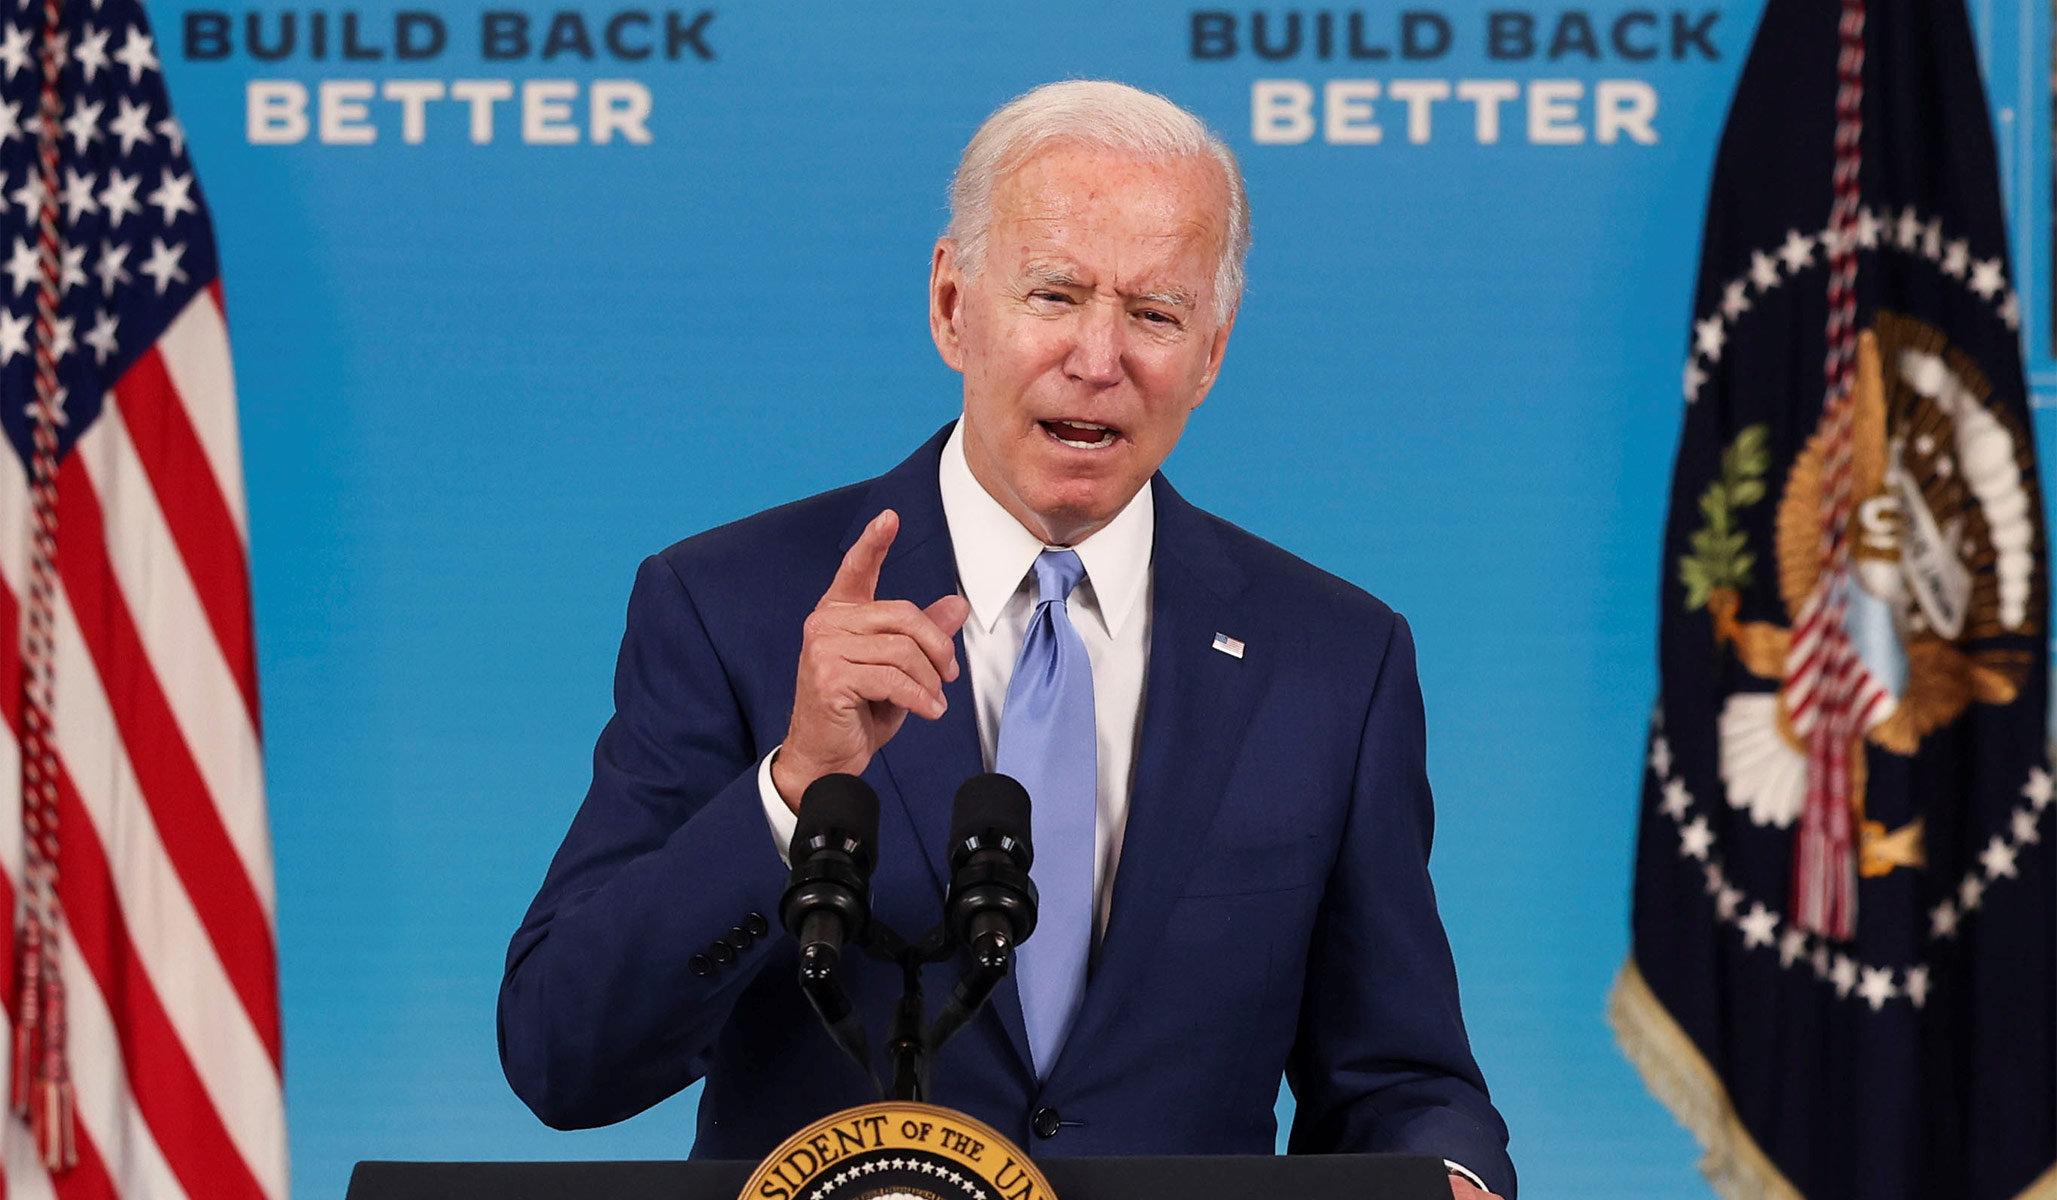 September Jobs Report: Biden Fails to Mention Labor Shortage in Remarks